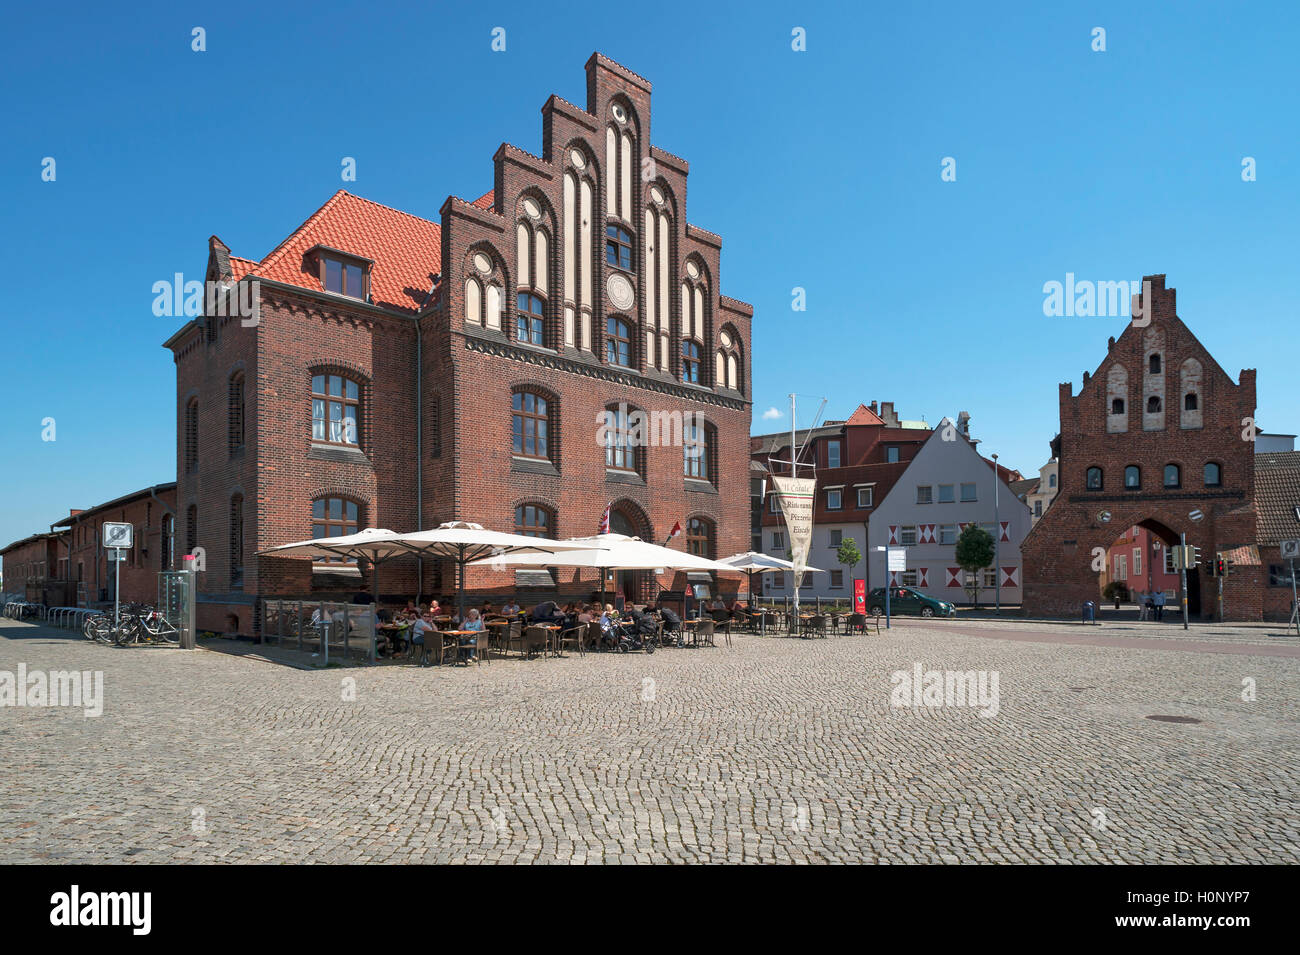 Old customs house with water gate in the Old Port, Wismar, Mecklenburg-Western Pomerania, Germany - Stock Image